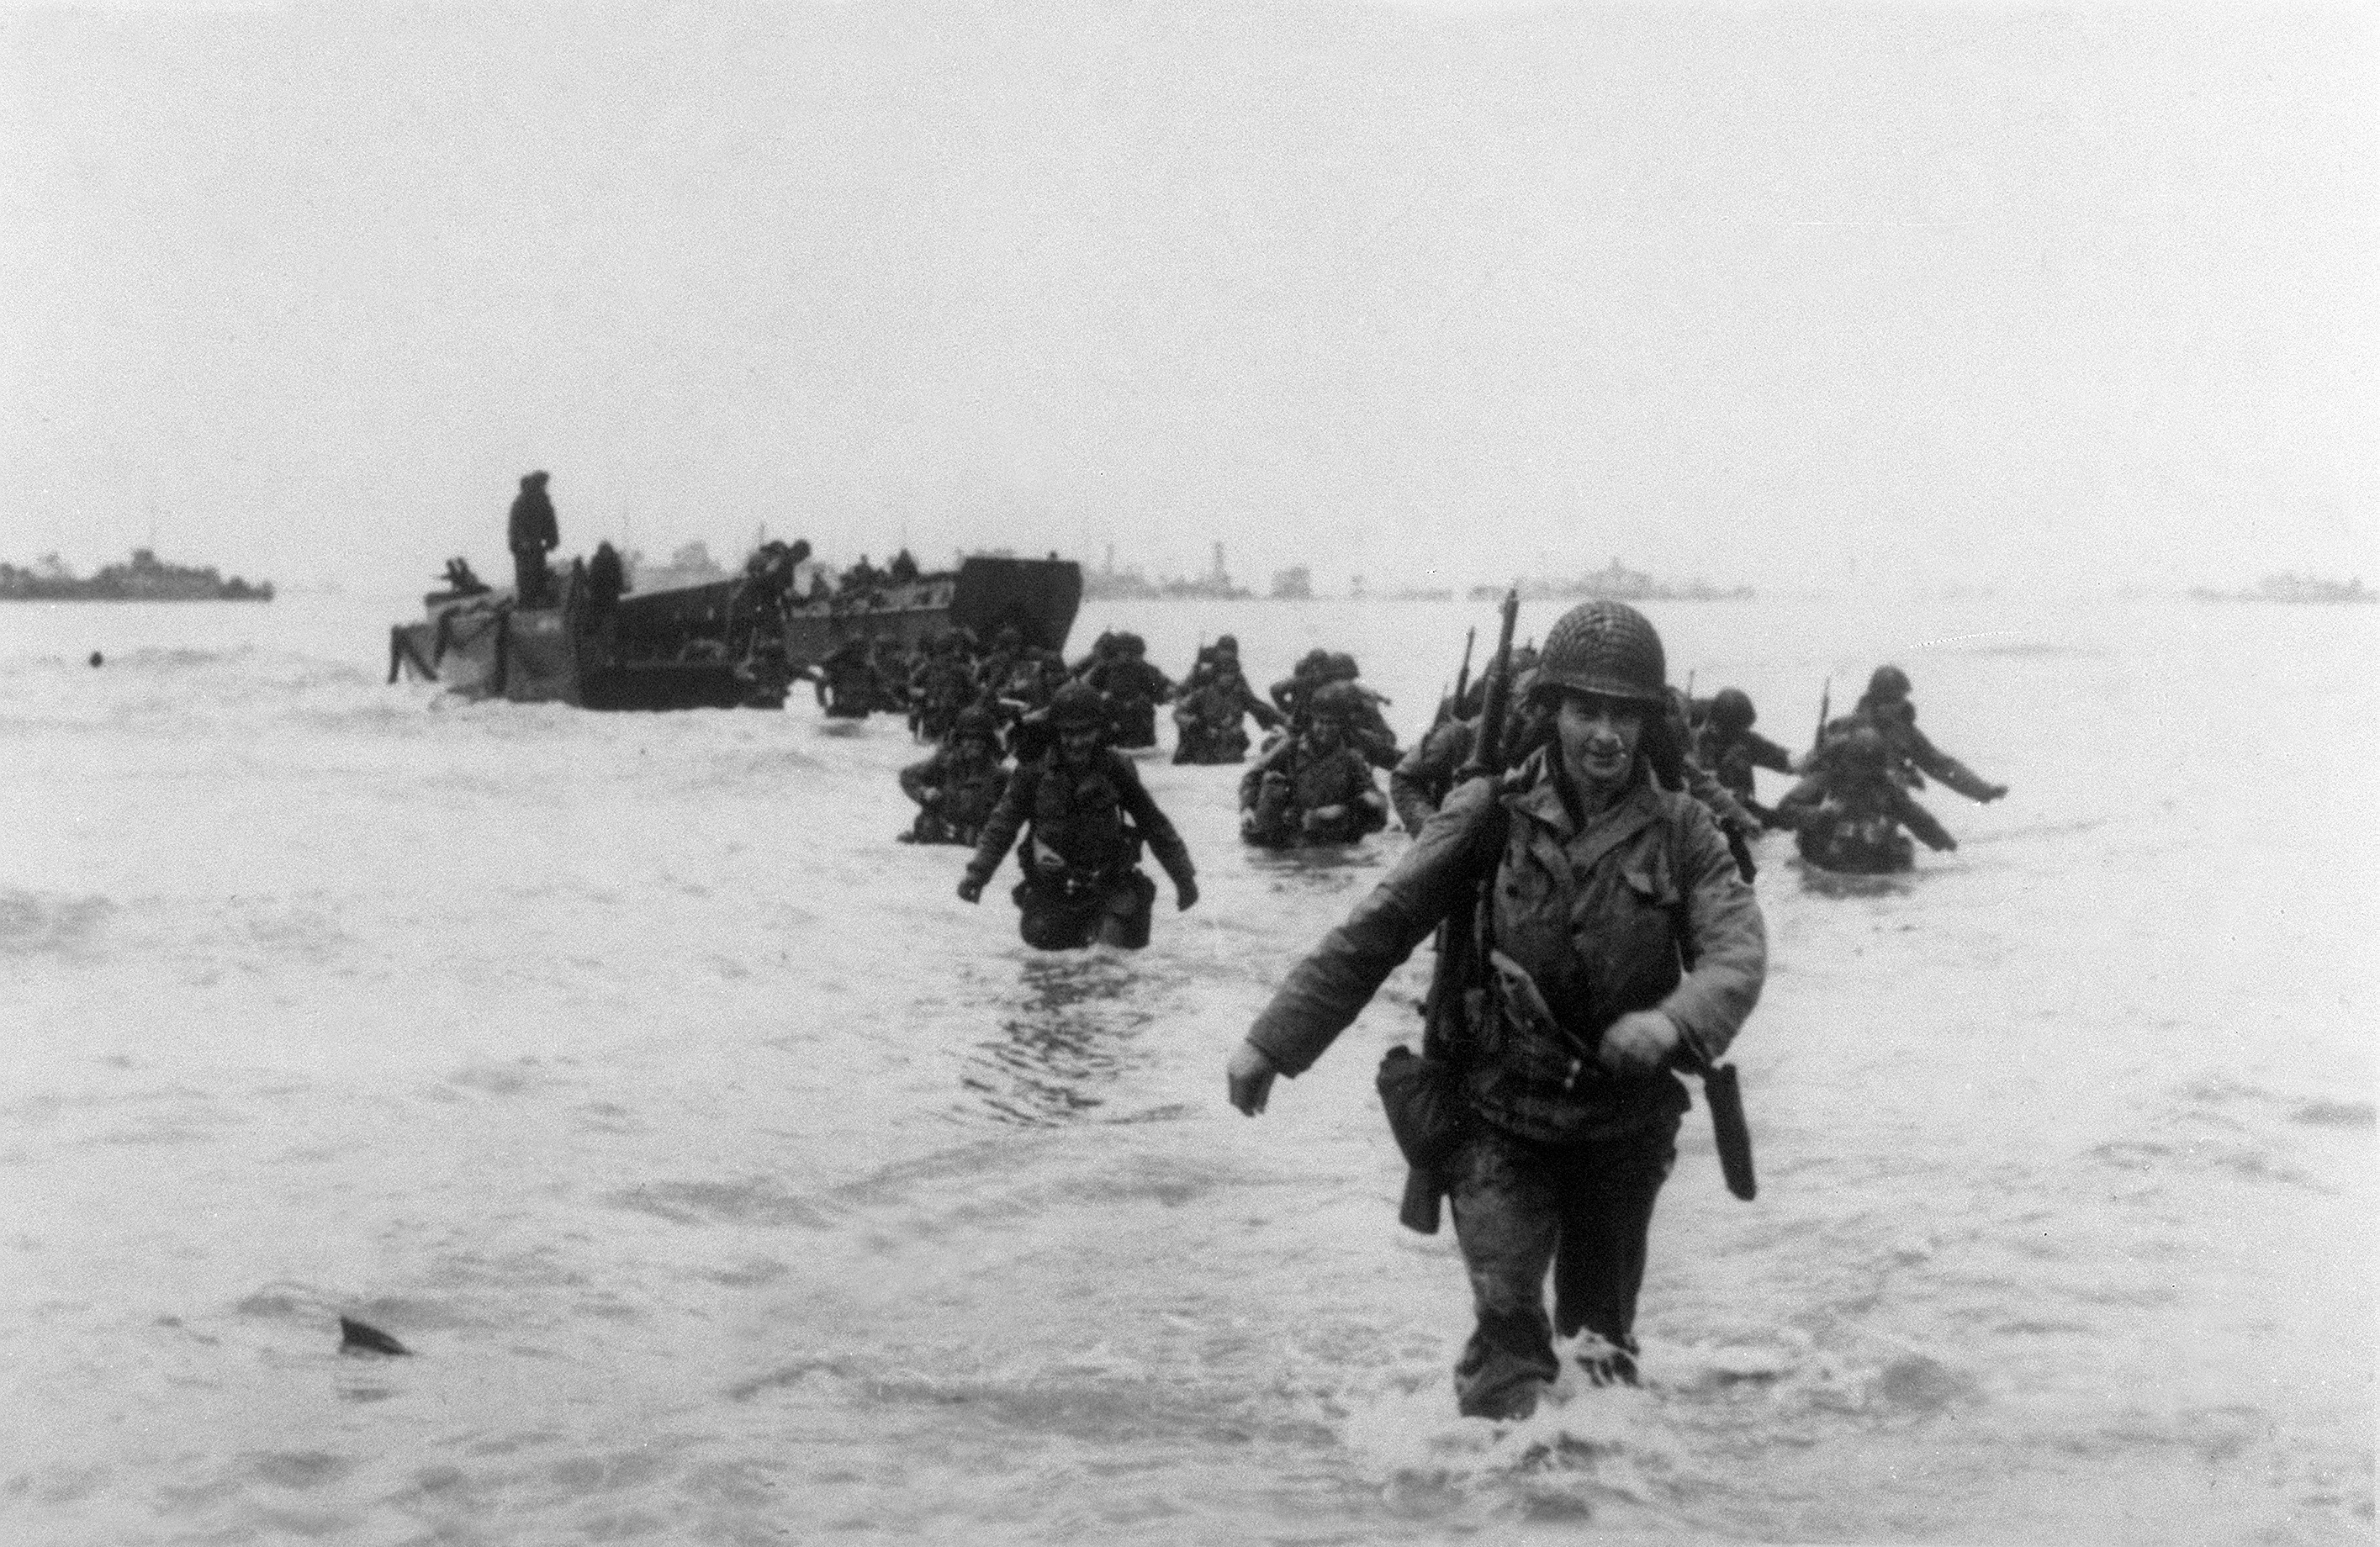 """American troops of the 4th Infantery Division (""""Famous Fourth"""") land on Utah Beach 06 June 1944 while Allied forces storm the Normandy beaches on D-Day. (STF/AFP via Getty Images)"""